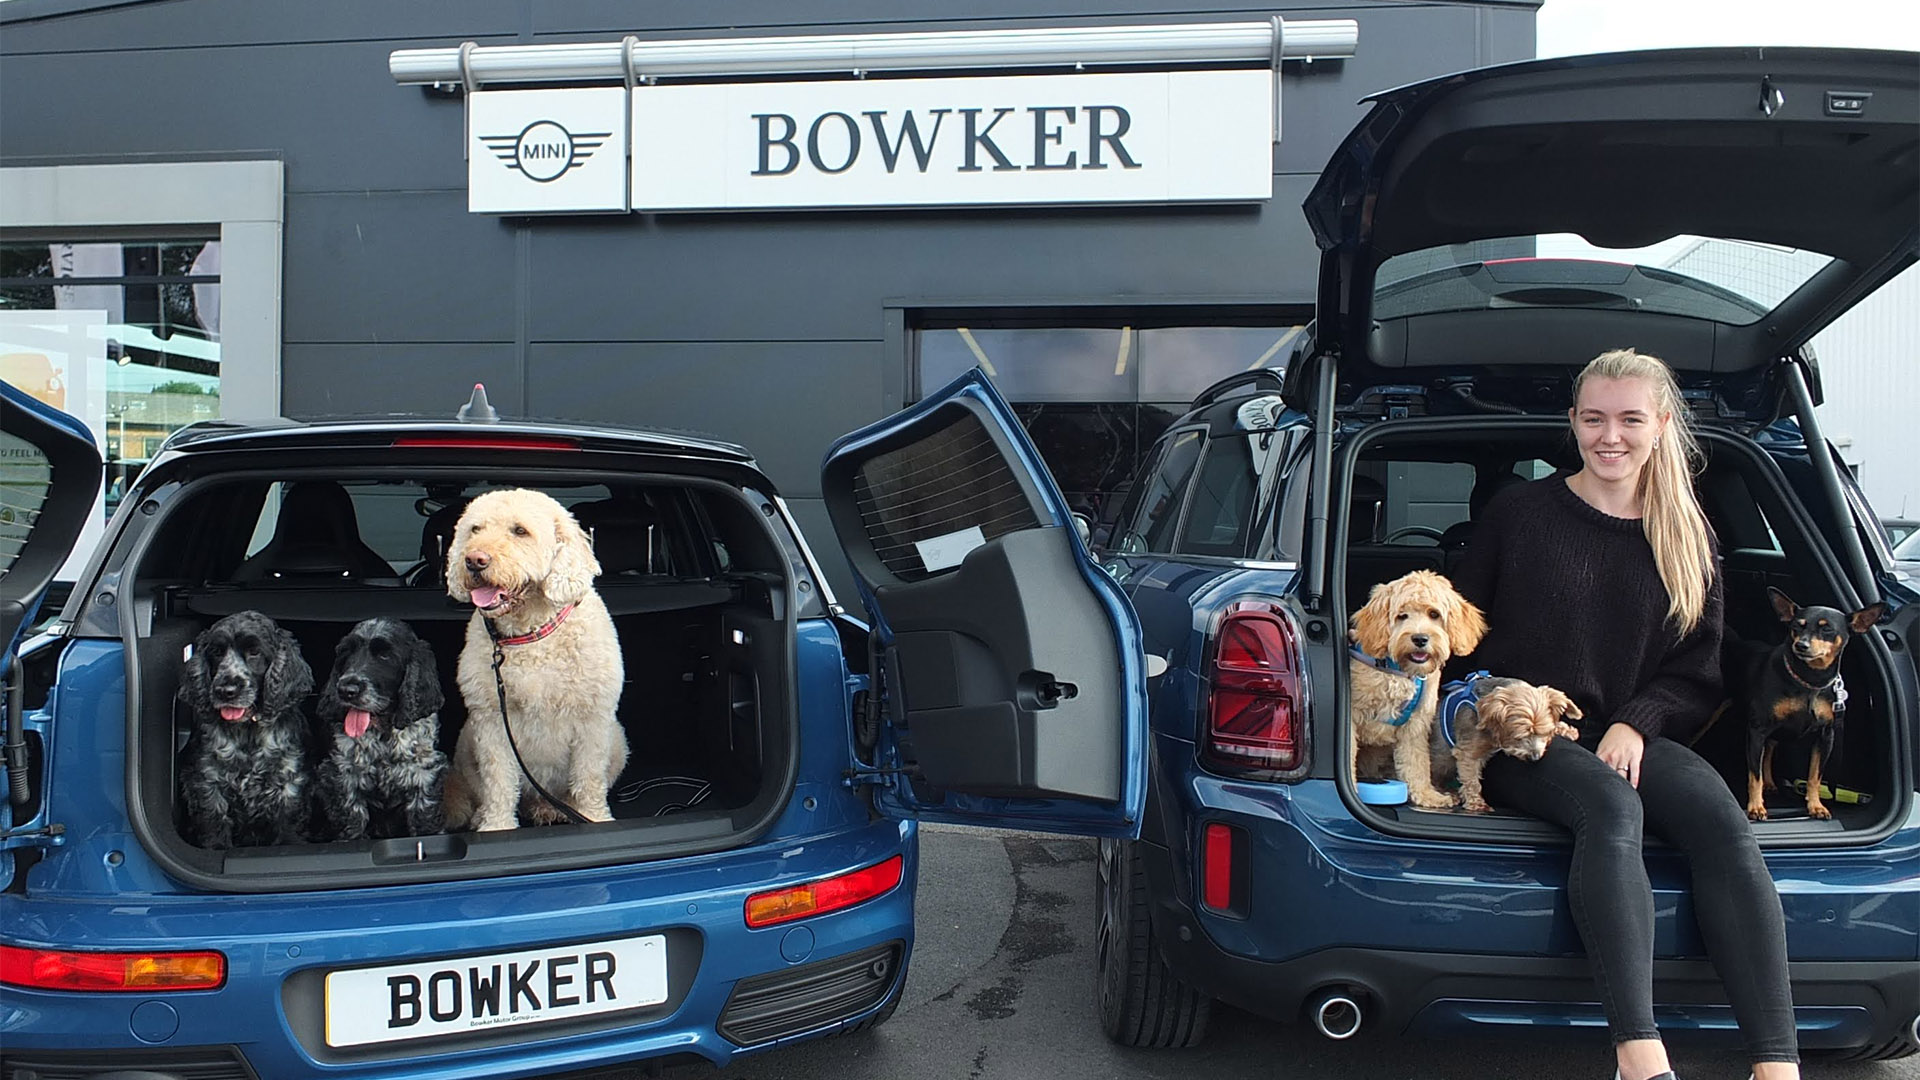 Bowker MINI Backs UK Mission to Become an Officially Dog-Friendly Car Retailer with International Dog Day Celebration